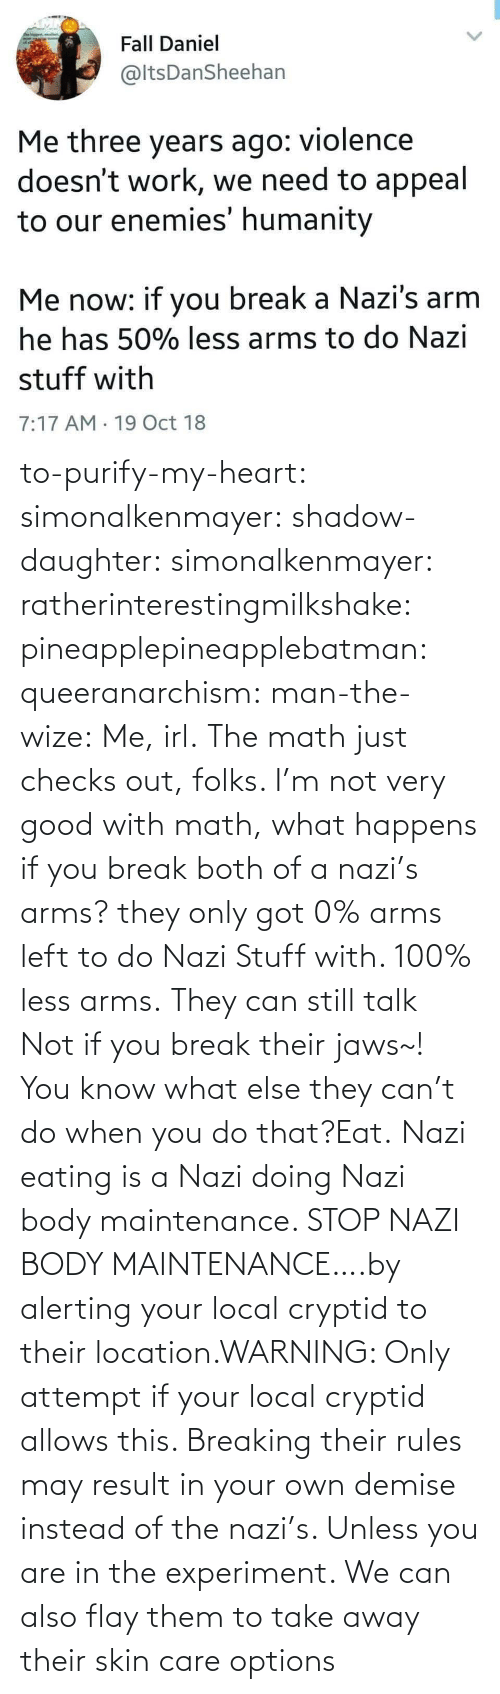 Break: to-purify-my-heart:  simonalkenmayer:  shadow-daughter: simonalkenmayer:  ratherinterestingmilkshake:  pineapplepineapplebatman:  queeranarchism:  man-the-wize: Me, irl. The math just checks out, folks.     I'm not very good with math, what happens if you break both of a nazi's arms?  they only got 0% arms left to do Nazi Stuff with. 100% less arms.  They can still talk  Not if you break their jaws~!  You know what else they can't do when you do that?Eat.   Nazi eating is a Nazi doing Nazi body maintenance. STOP NAZI BODY MAINTENANCE….by alerting your local cryptid to their location.WARNING: Only attempt if your local cryptid allows this. Breaking their rules may result in your own demise instead of the nazi's. Unless you are in the experiment.    We can also flay them to take away their skin care options